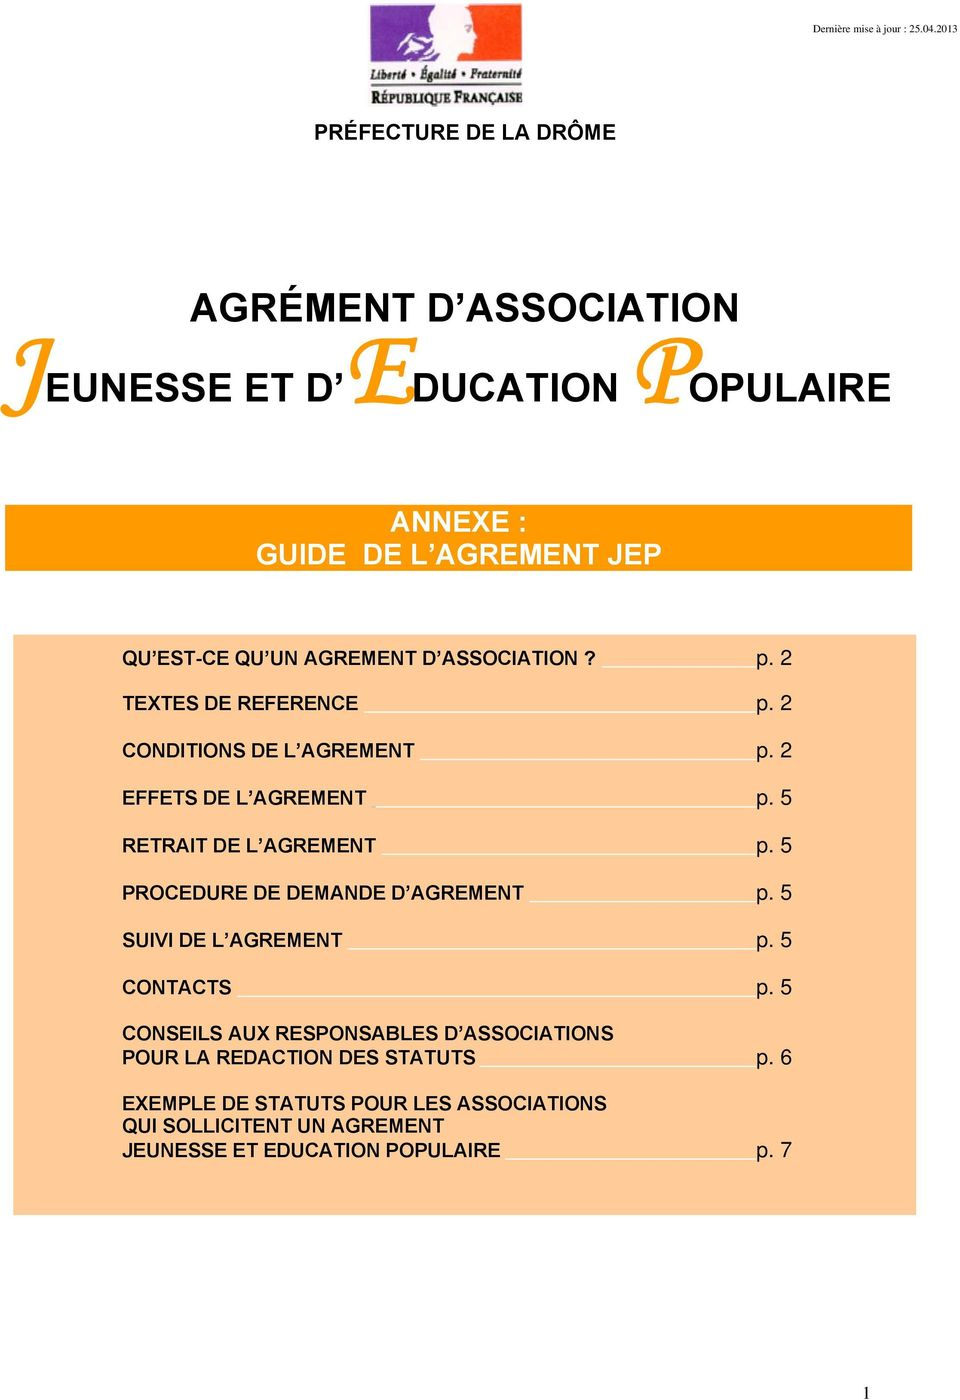 AGREMENT D ASSOCIATION? p. 2 TEXTES DE REFERENCE p. 2 CONDITIONS DE L AGREMENT p. 2 EFFETS DE L AGREMENT p. 5 RETRAIT DE L AGREMENT p.